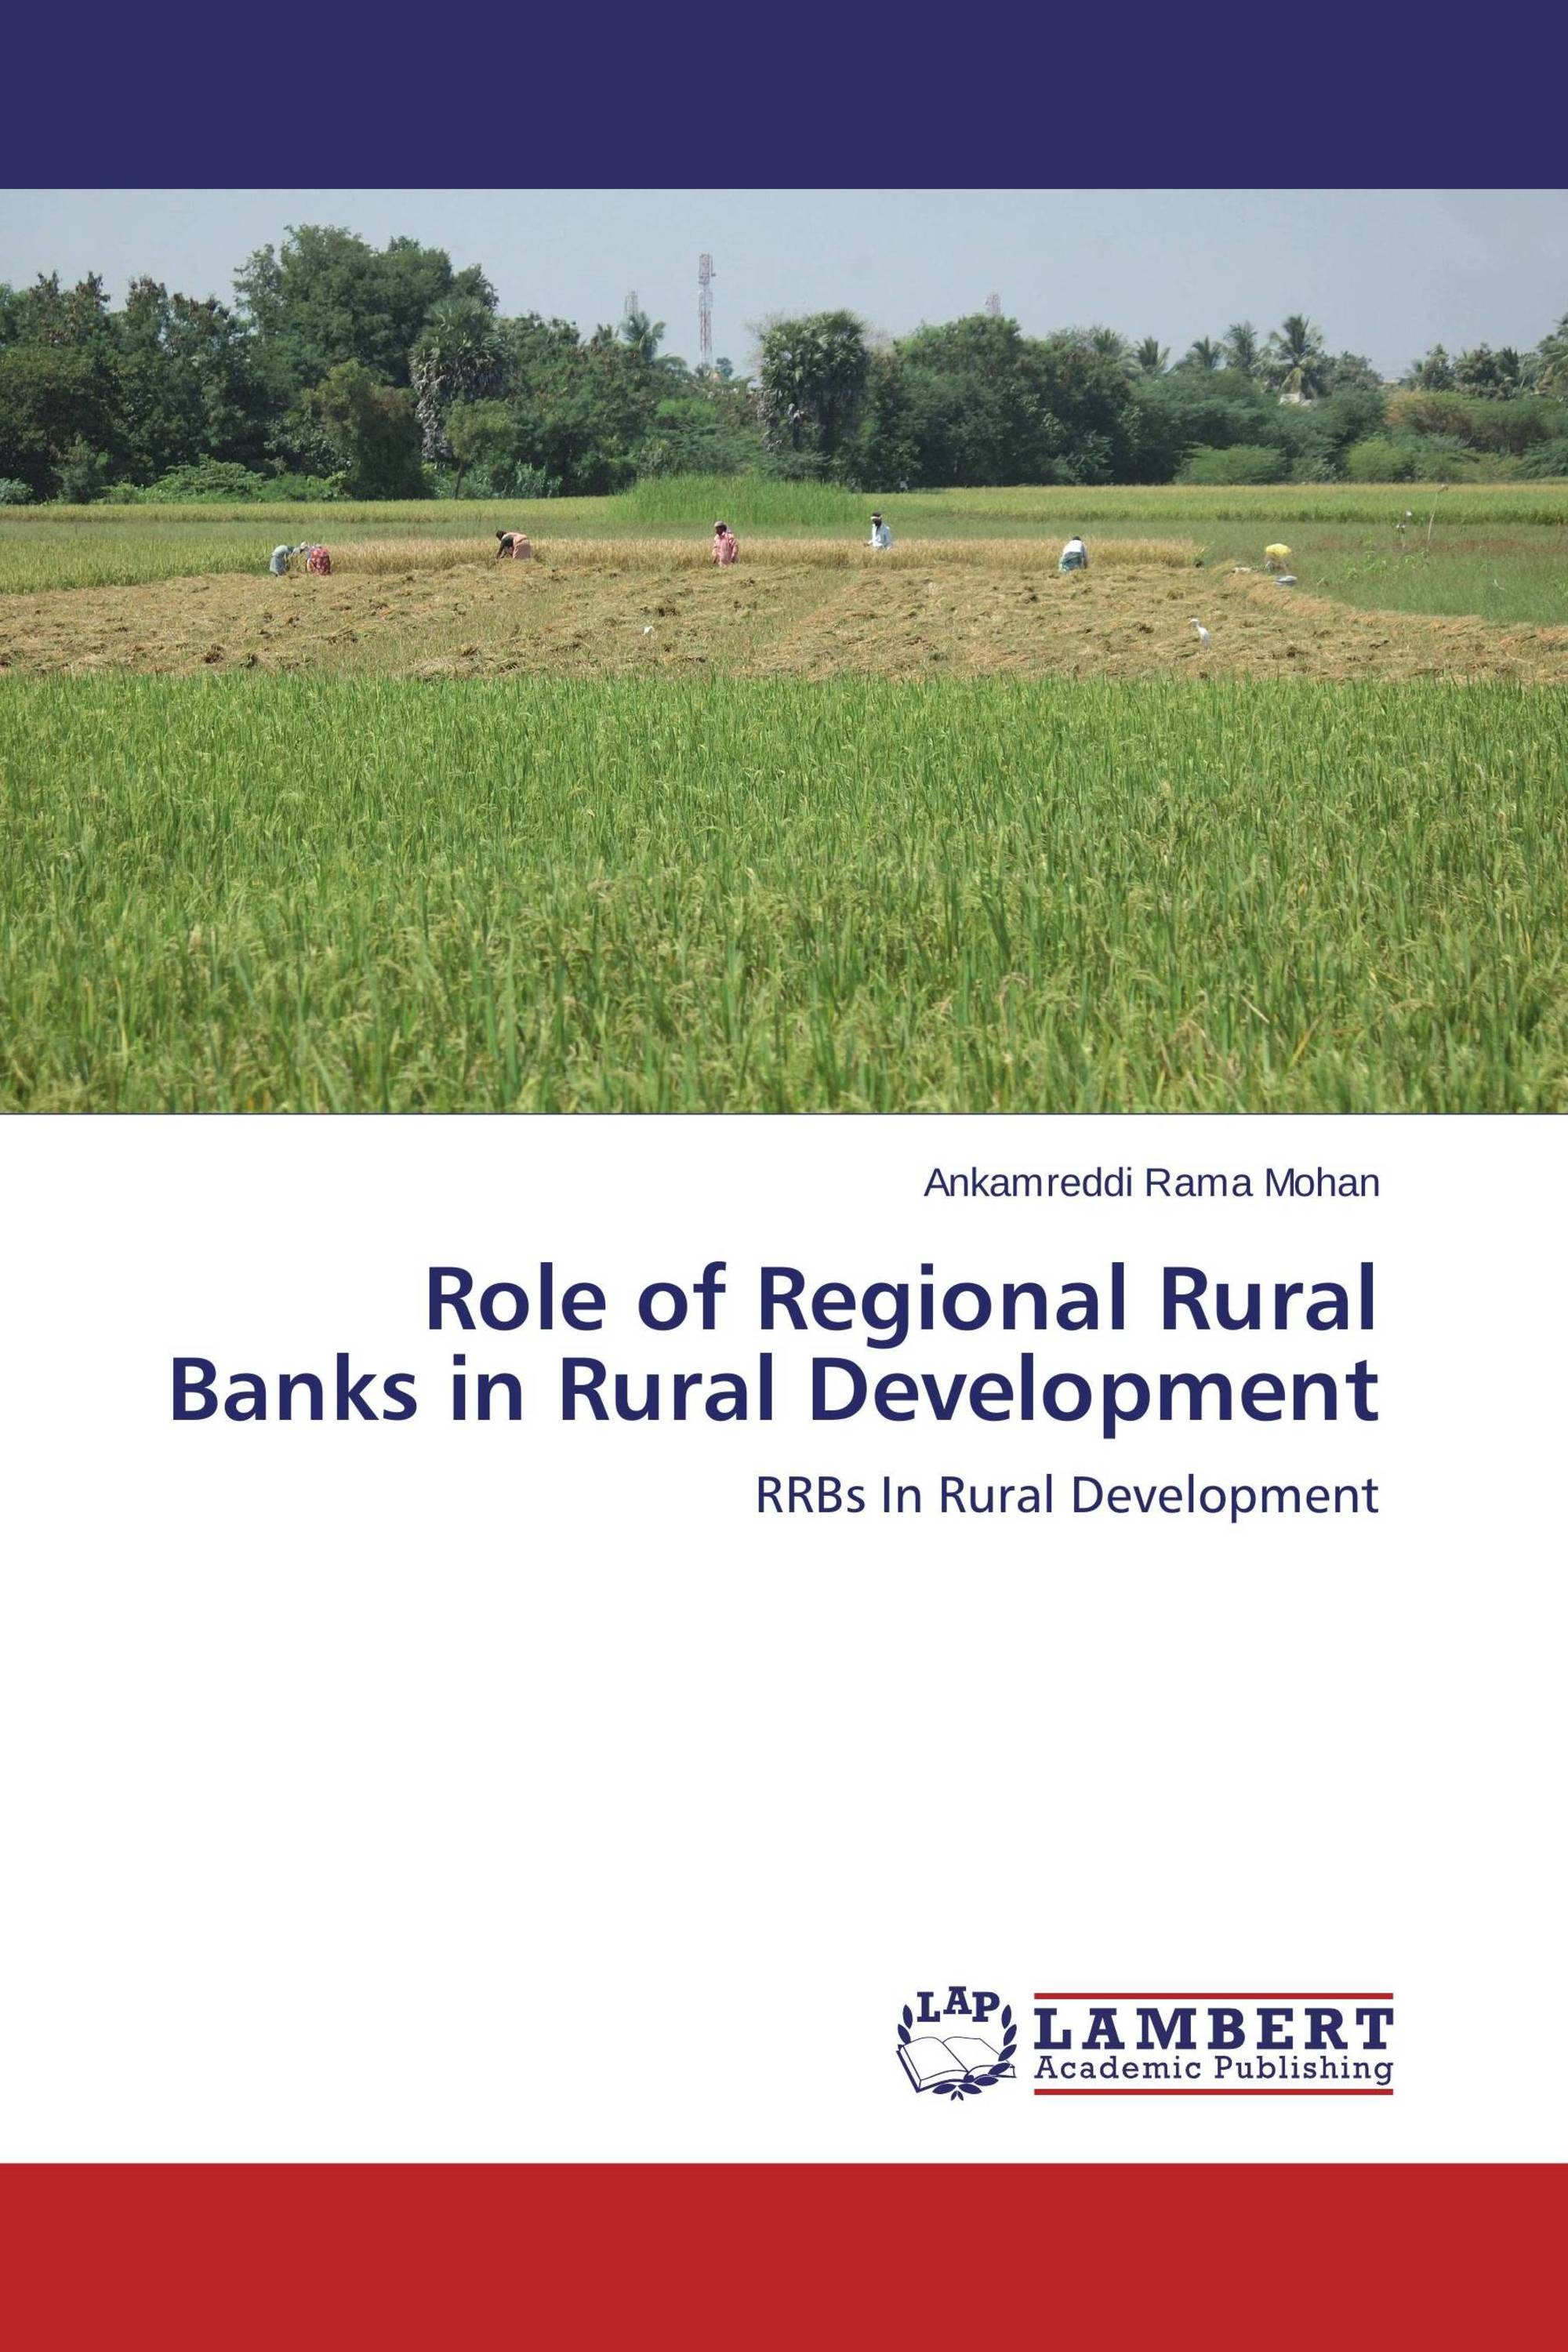 Essay on role of banks in rural development